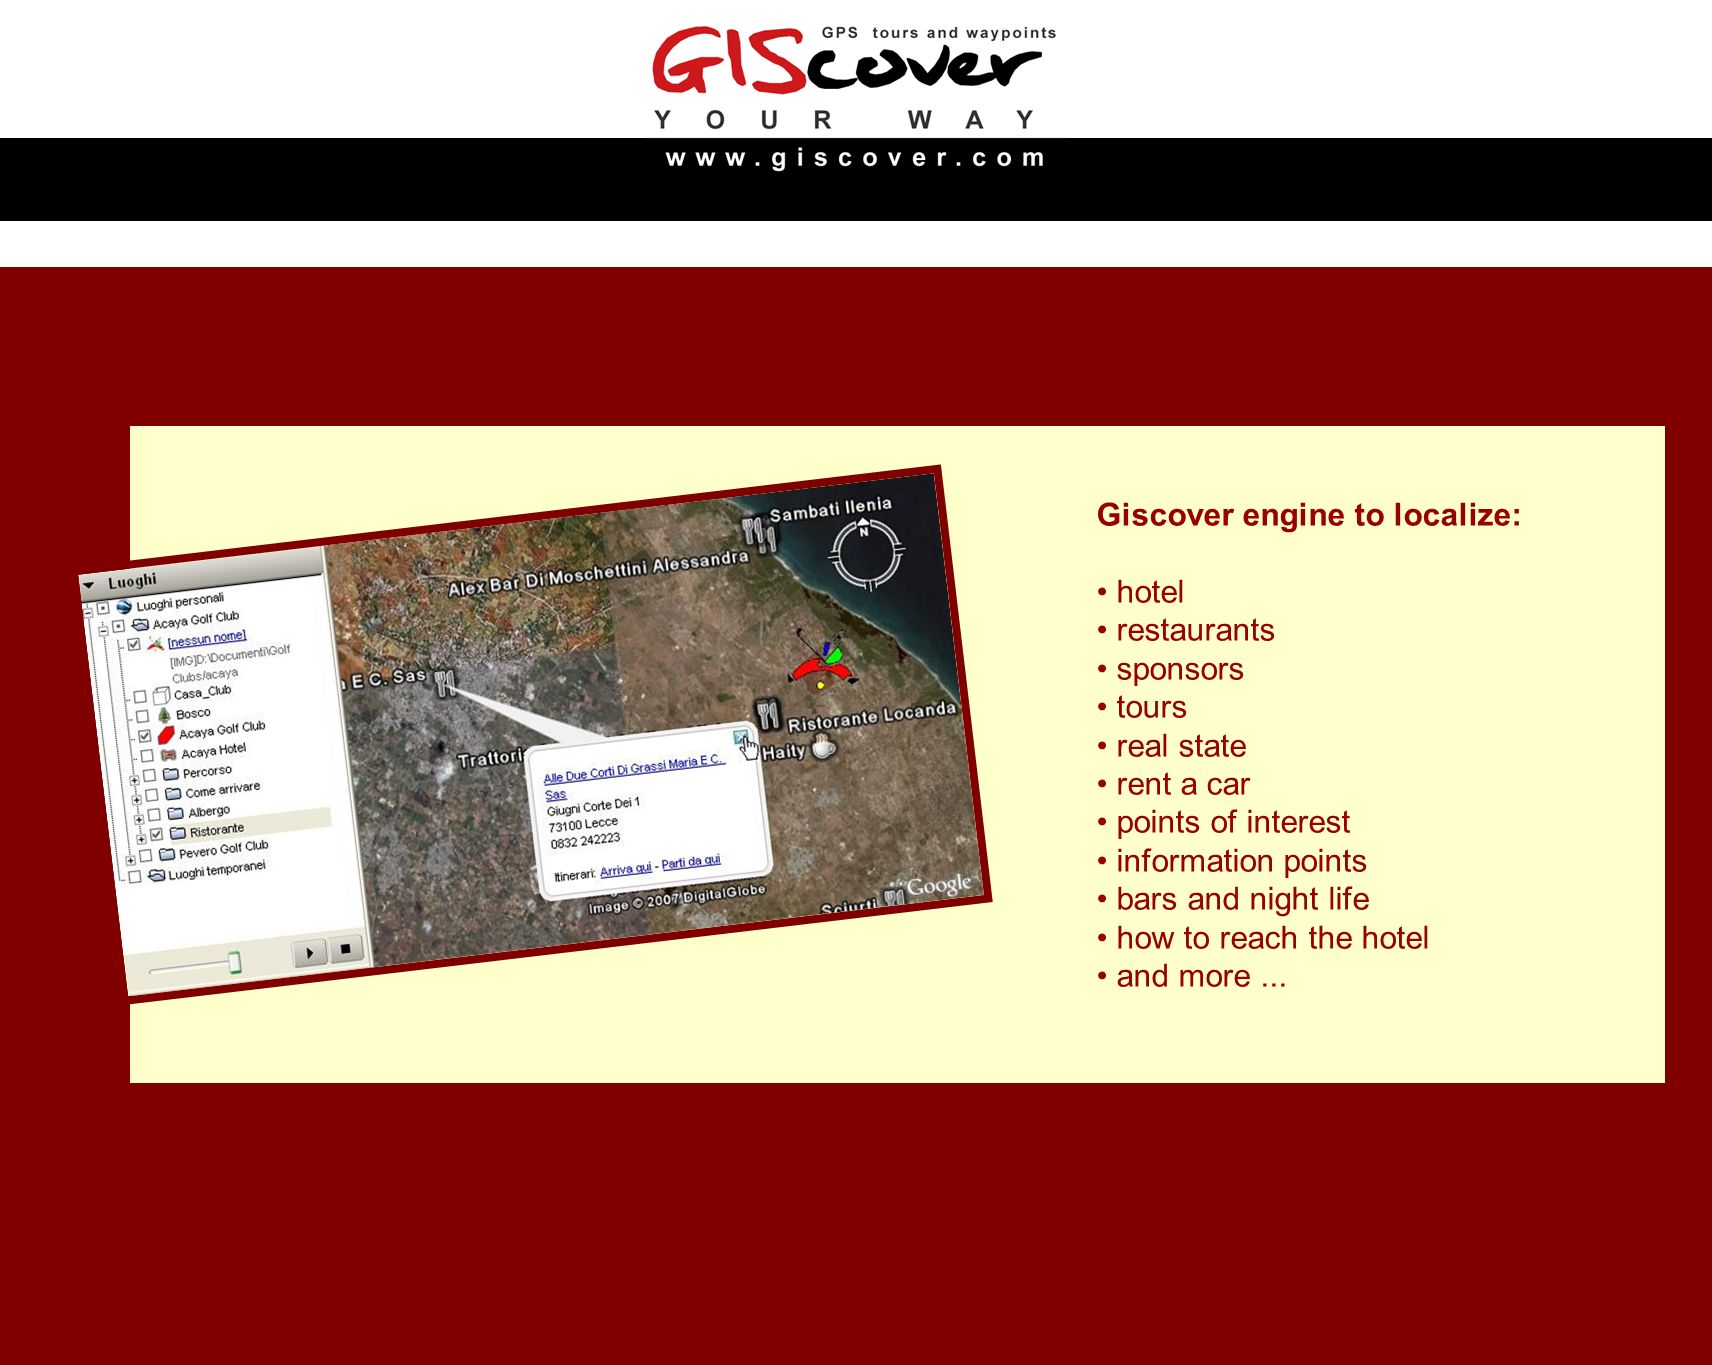 Giscover engine to localize: